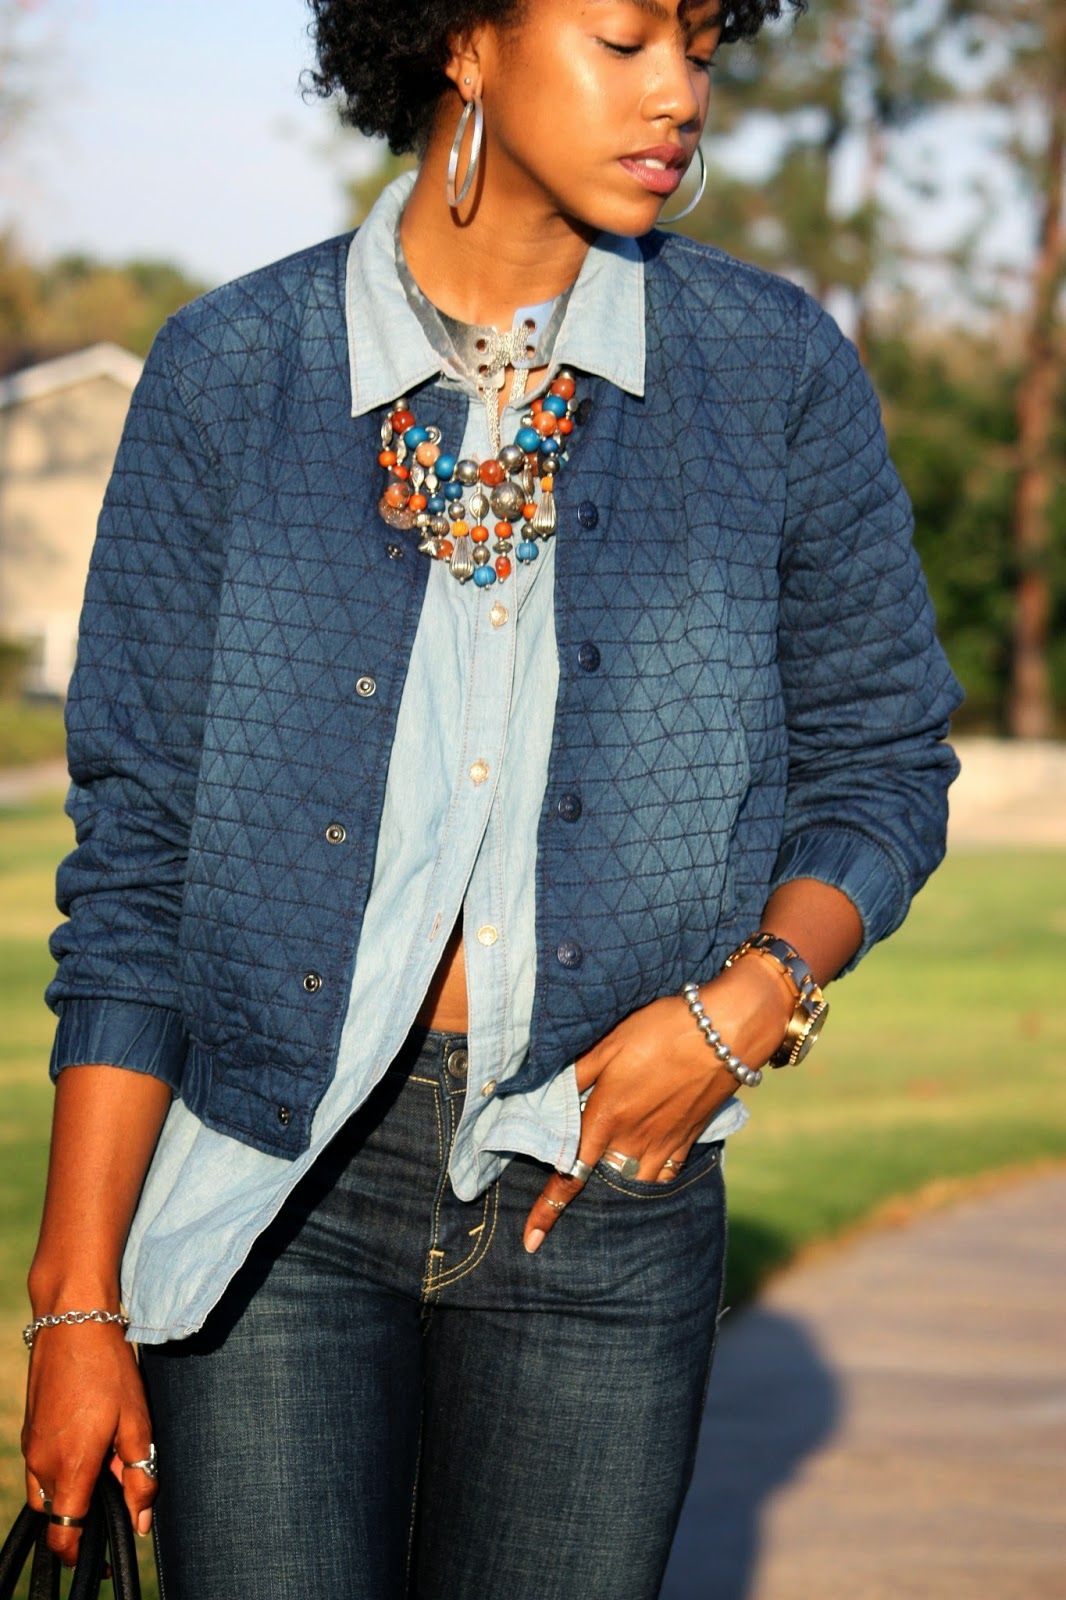 Wearing H&M quilted denim jacket accessorized with silver bib necklace vintage beaded necklace